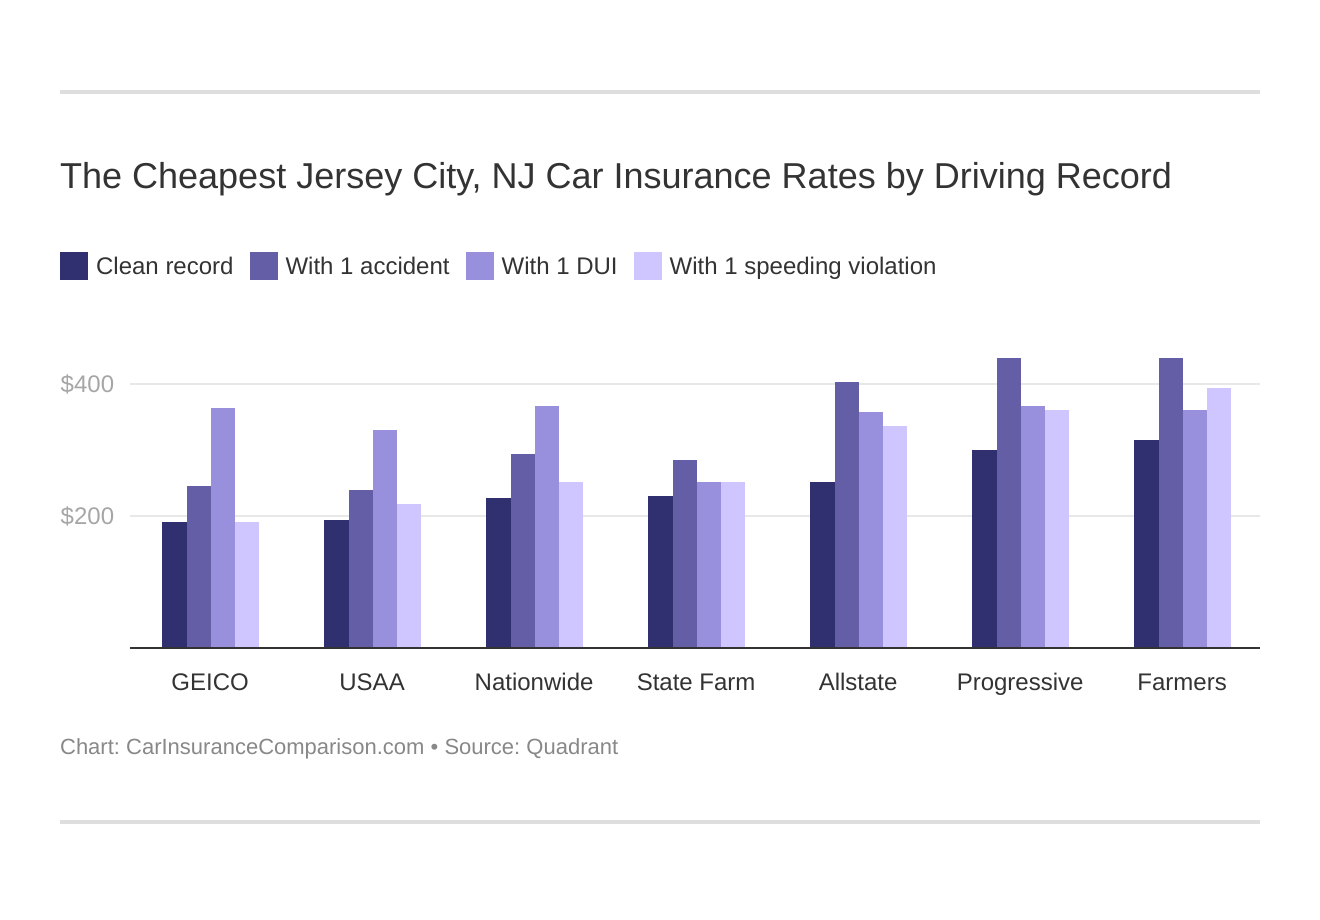 The Cheapest Jersey City, NJ Car Insurance Rates by Driving Record